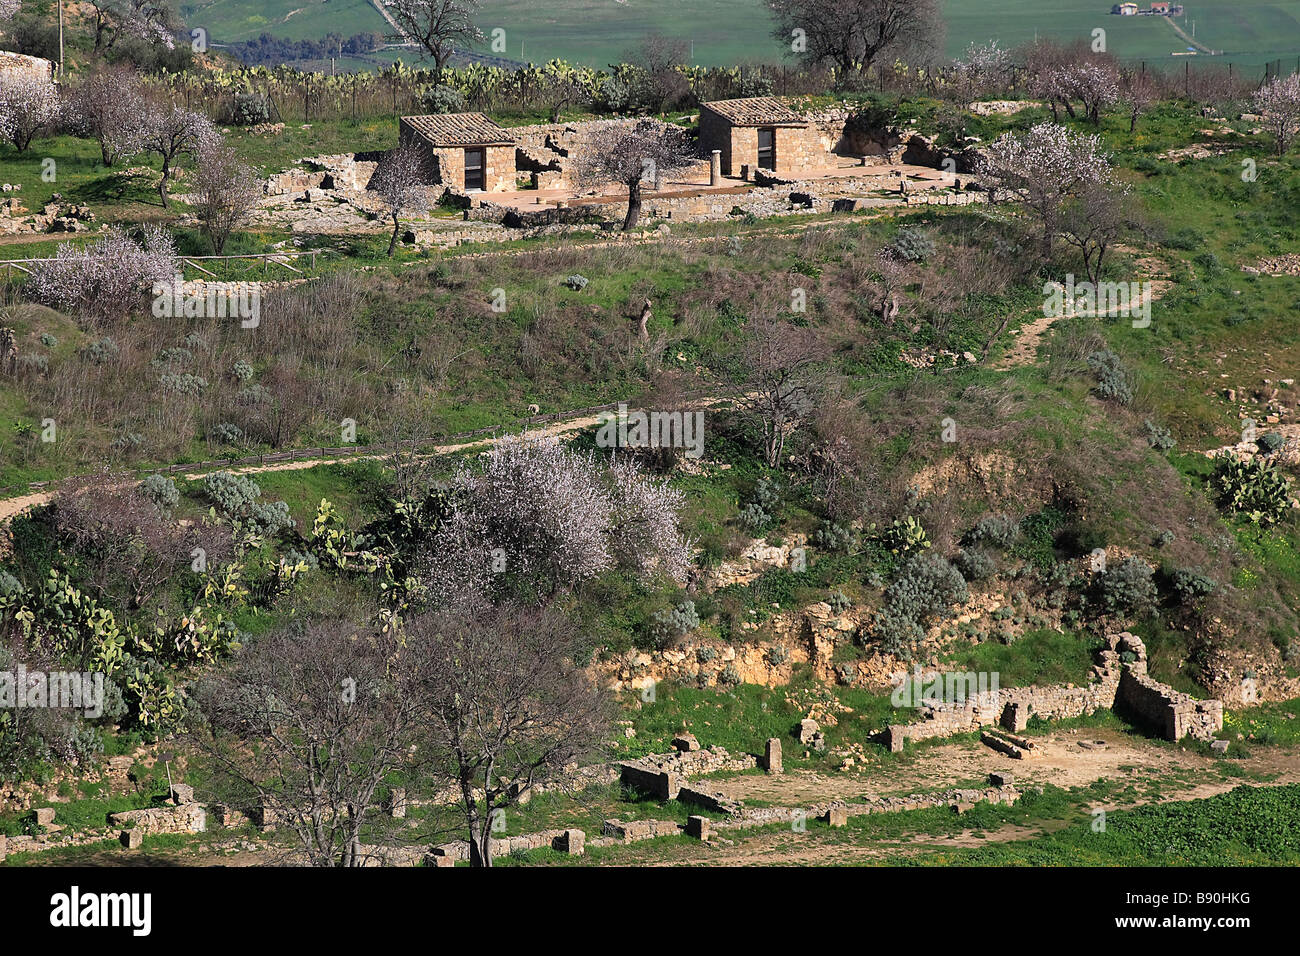 House of Ganymede, archaeological area, Morgantina, Sicily, Italy - Stock Image